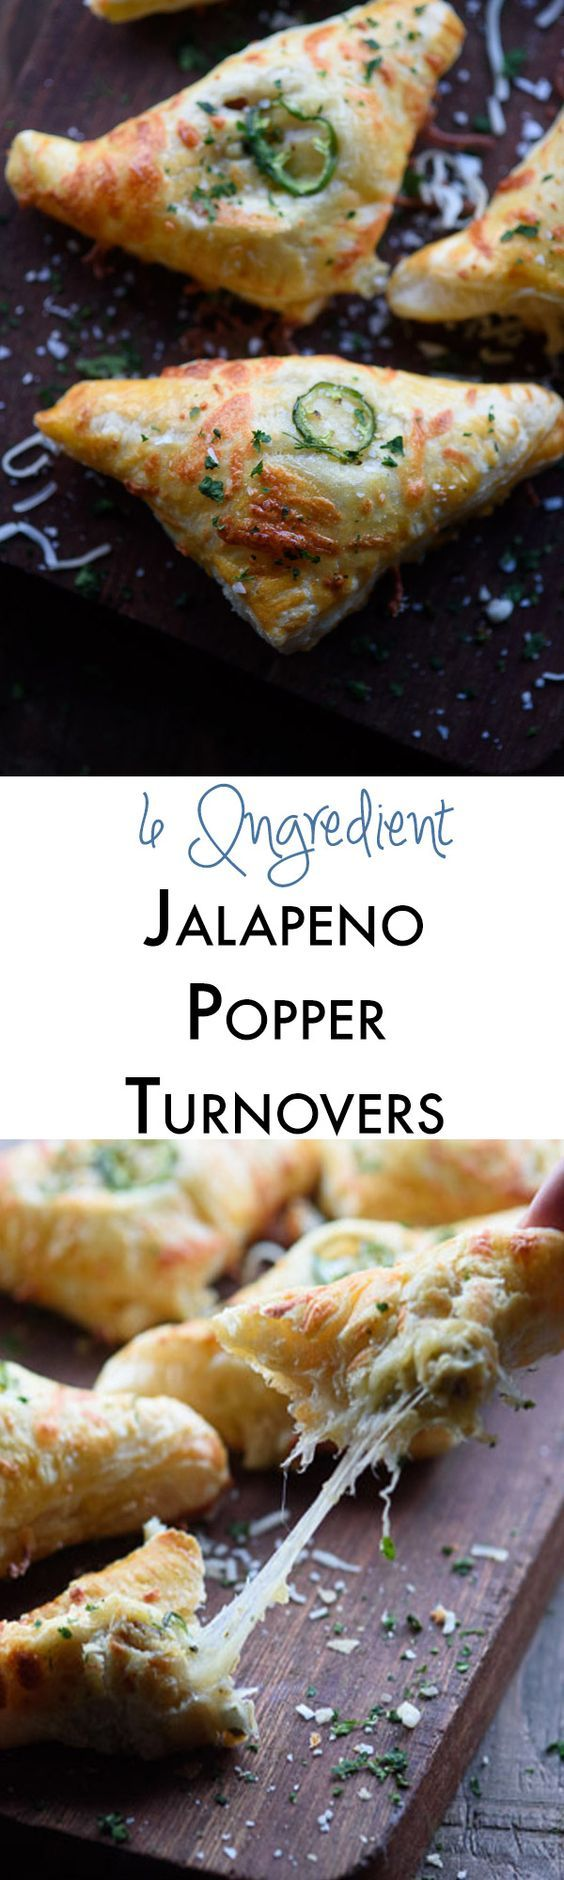 Jalapeno popper turnovers are the perfect easy appetizer recipe! The cheesy filling is mixed with bacon and jalapeño and then wrapped in store bought puff pastry. I always get asked for the recipe! http://theadventurebite.com/jalapeno-popper-turnovers/